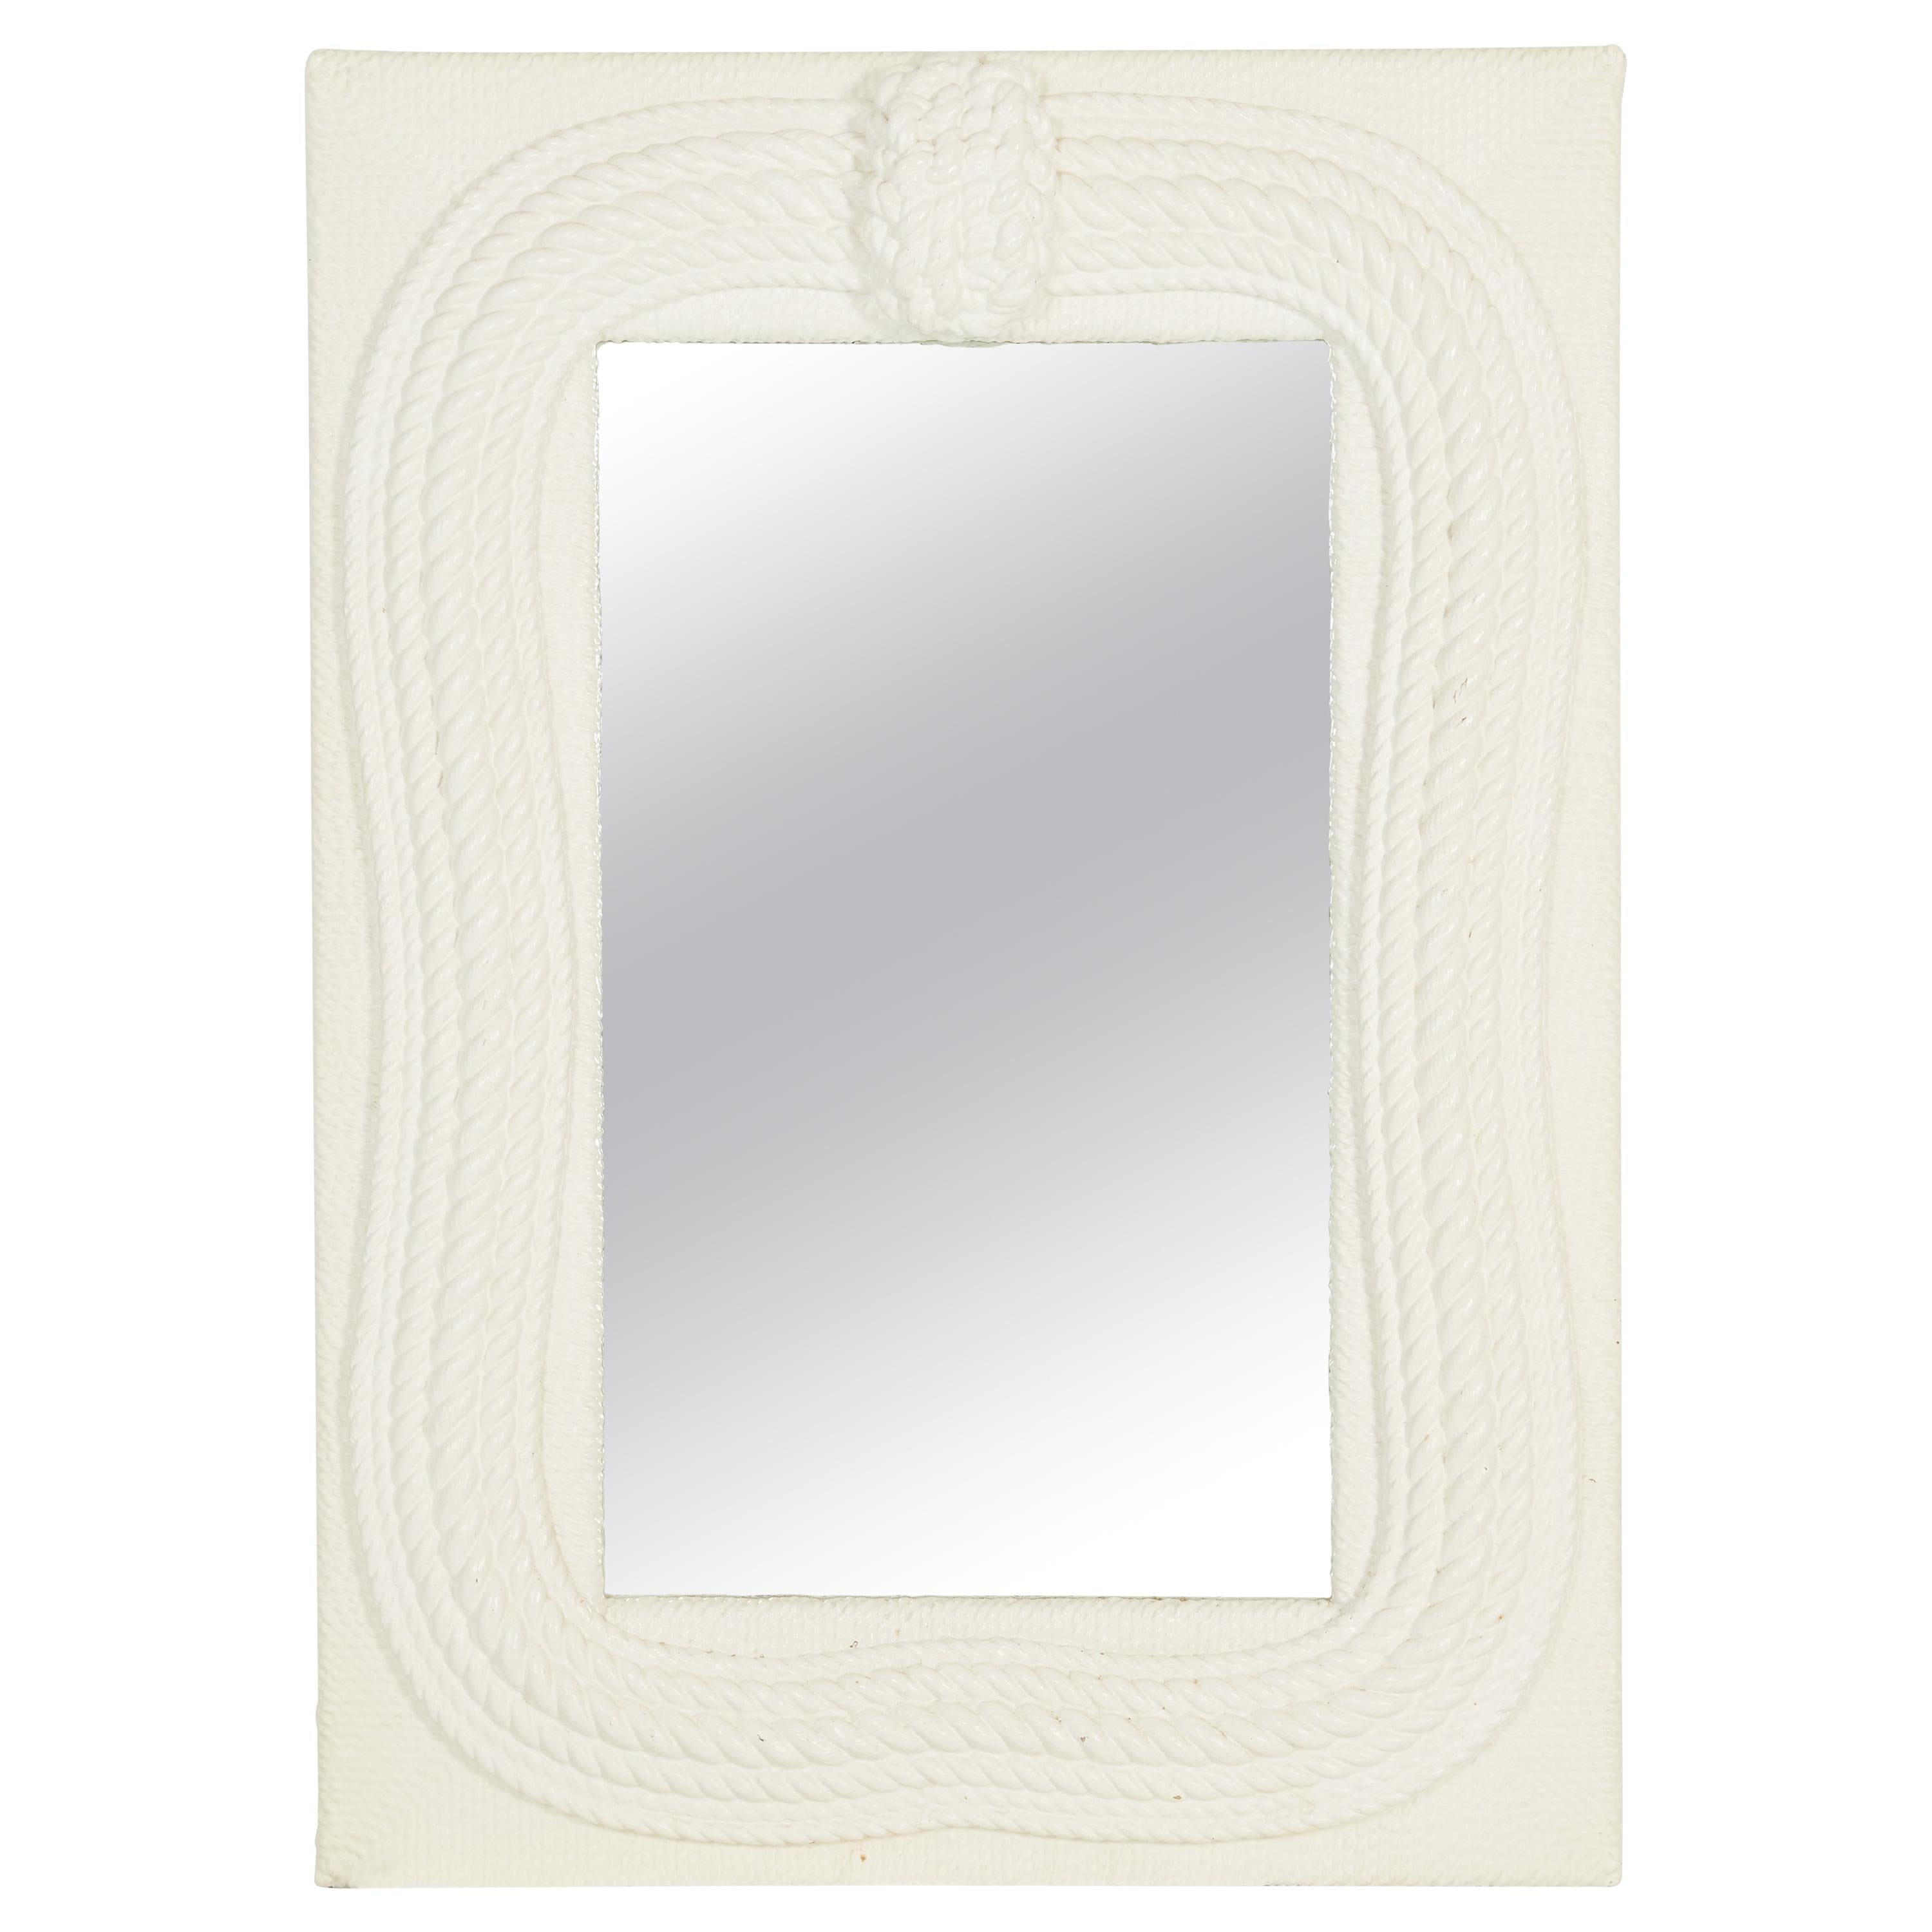 Nautical Lacquered Maritime Mirror, Braided Knotted Rope